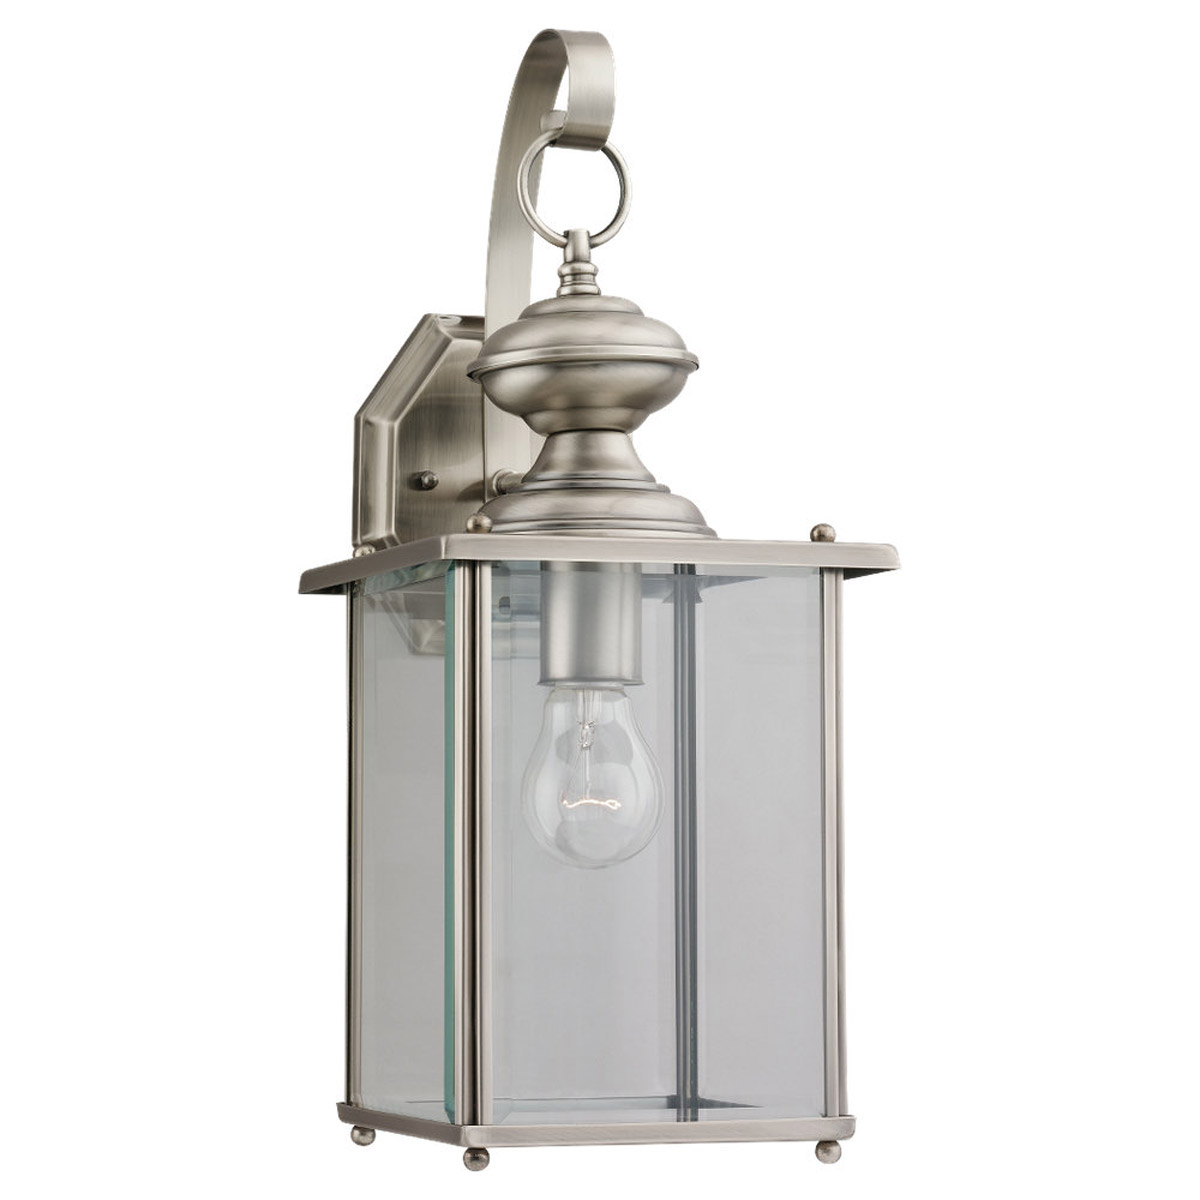 Sea Gull Lighting Jamestowne 1 Light Outdoor Wall Lantern in Antique Brushed Nickel 8458-965